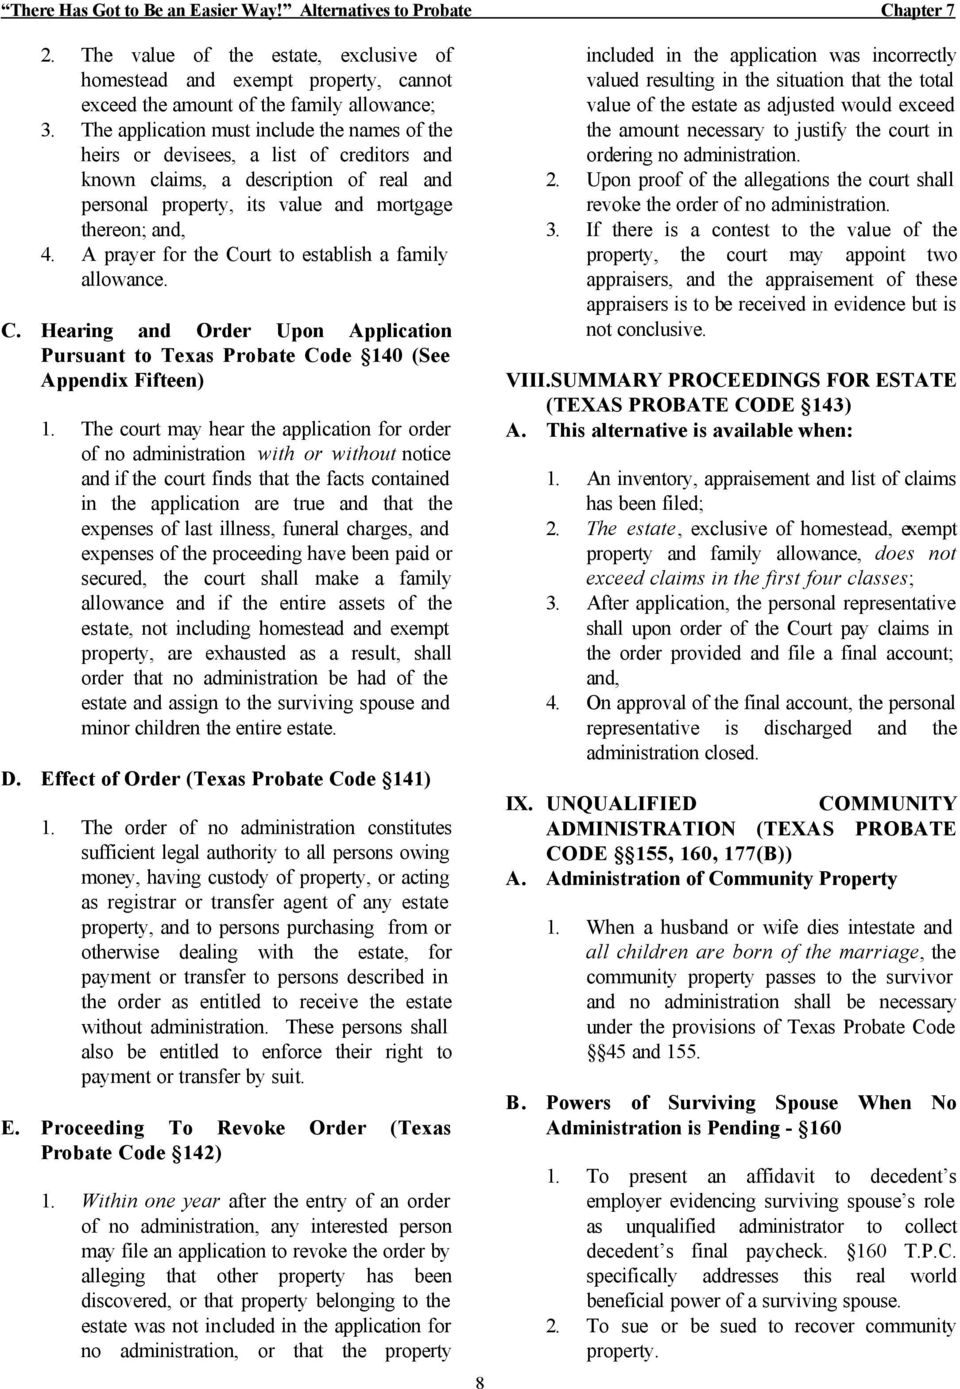 THERE HAS GOT TO BE AN EASIER WAY! ALTERNATIVES TO PROBATE - PDF